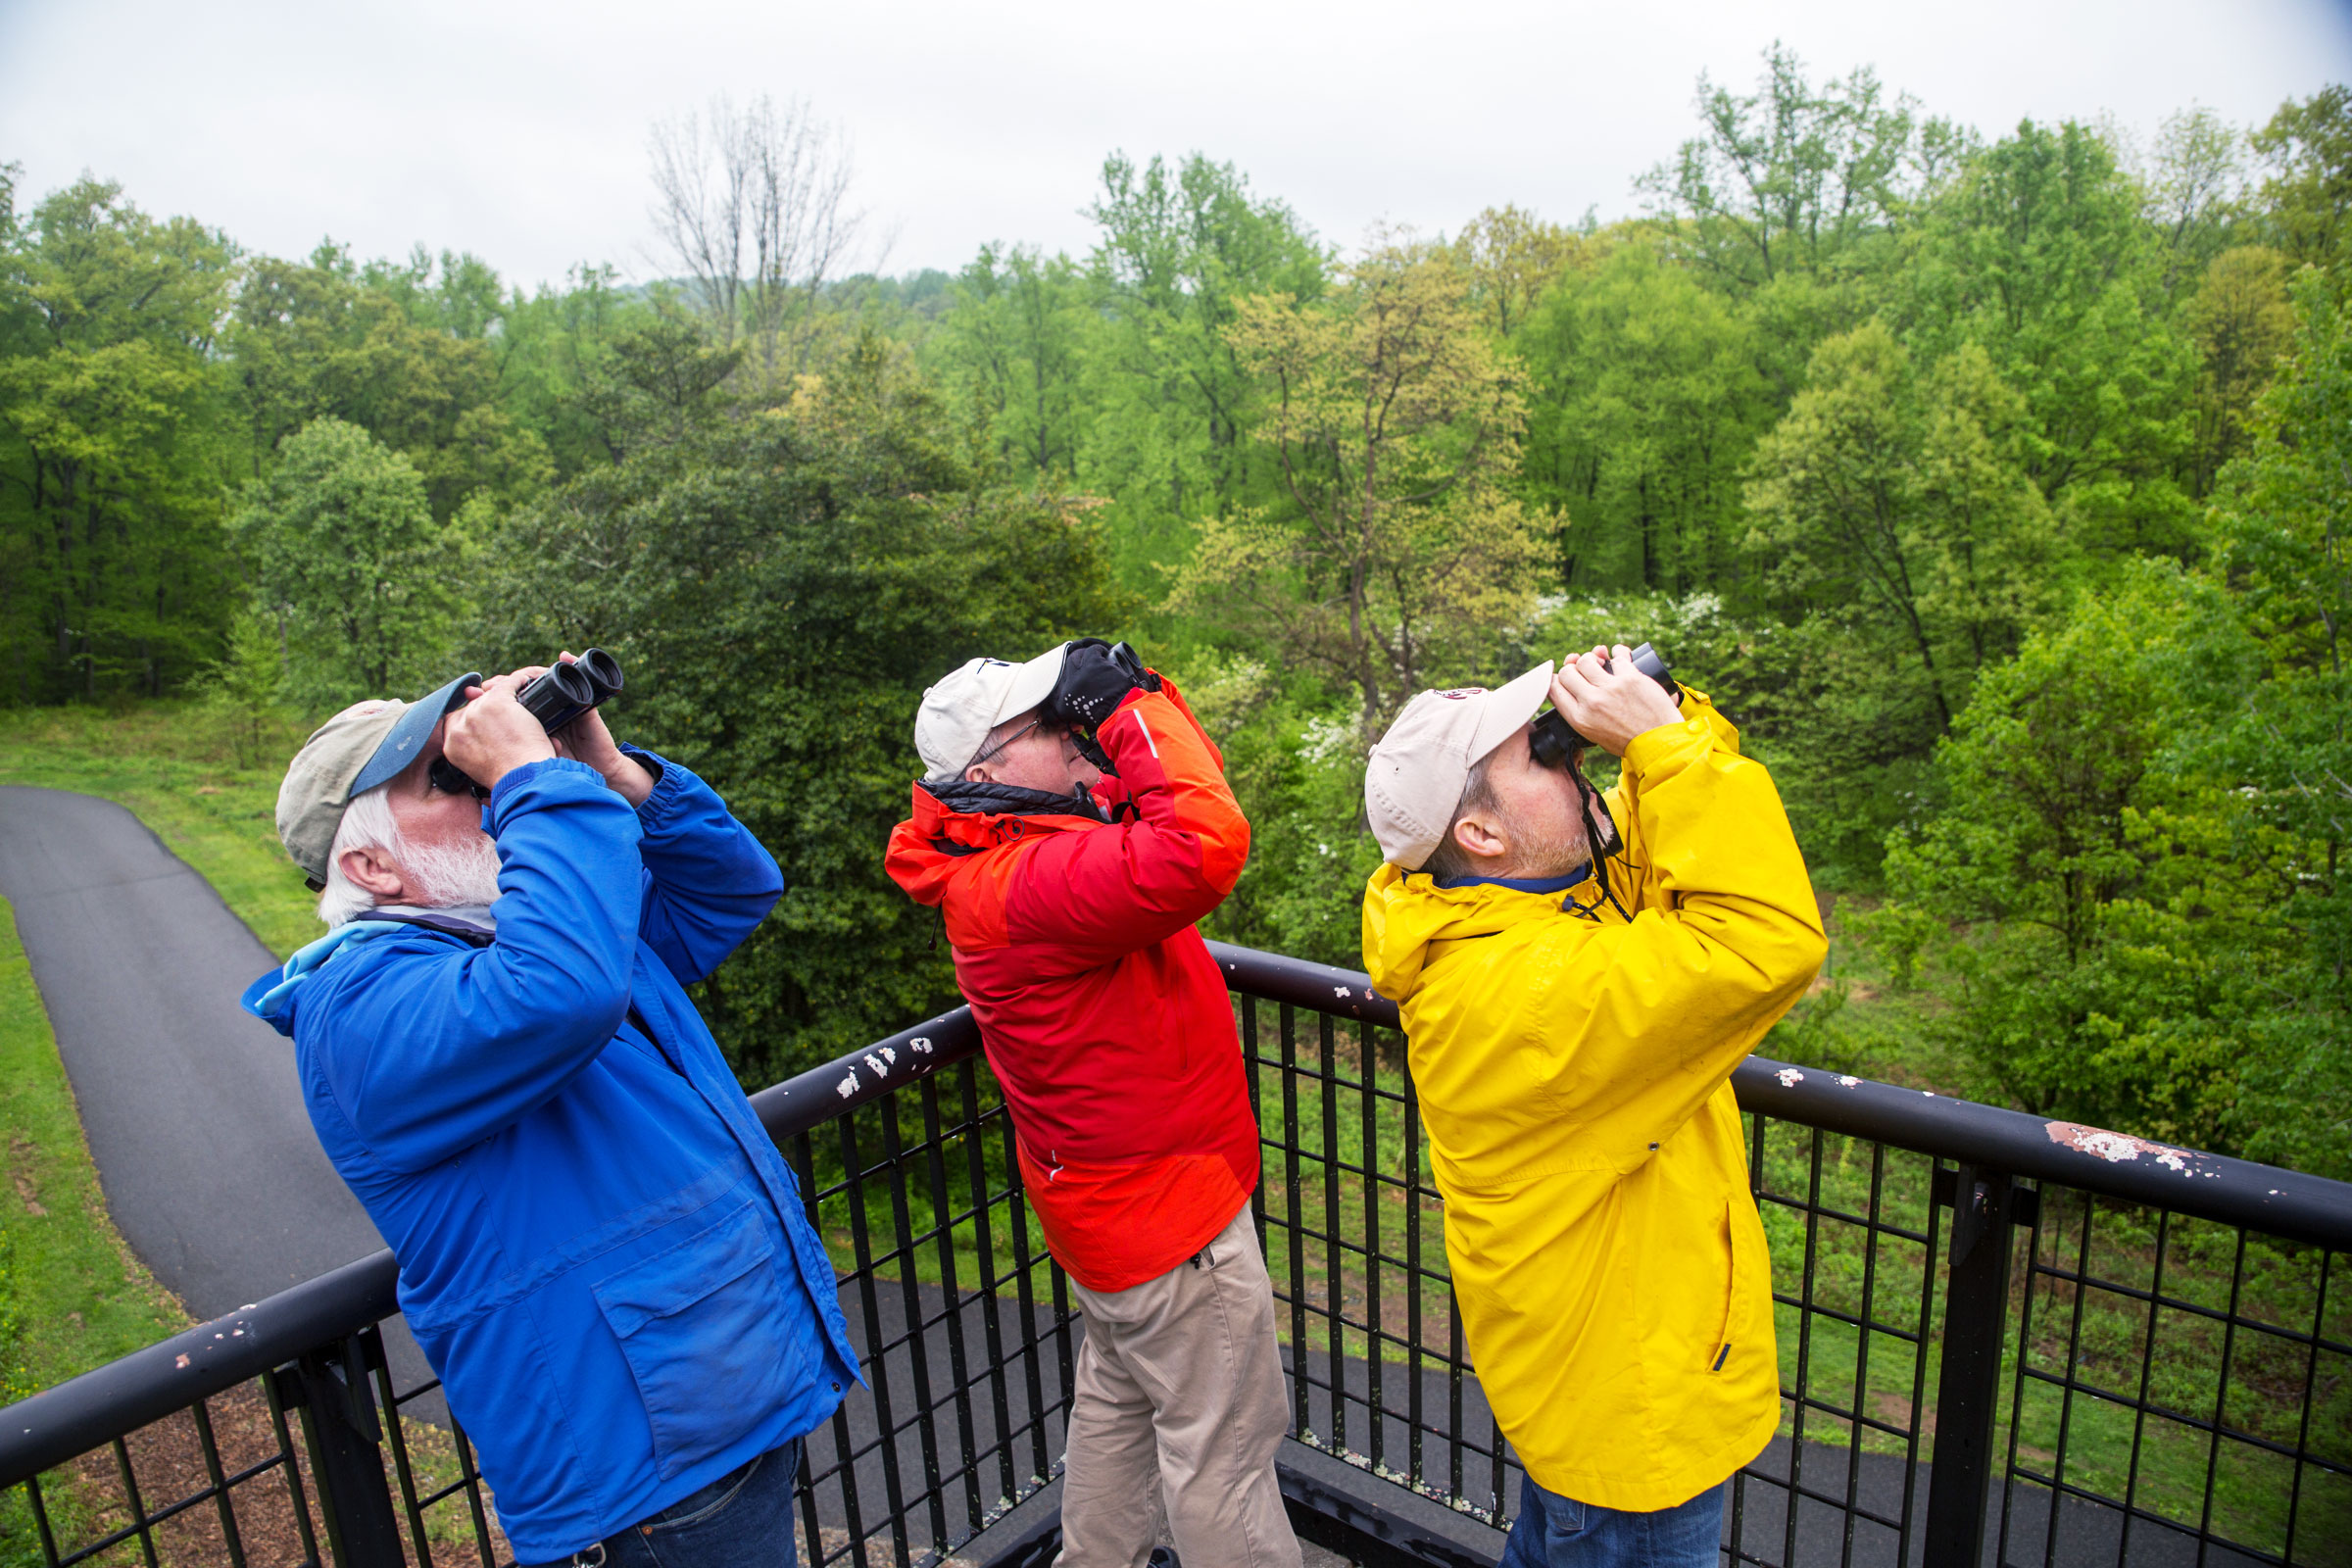 The Deckcissels spent hours like this, staring intently at the sky and into the surrounding vegetation. The pin oak (not pictured) that grows next to the observation platform was a total warbler magnet. Camilla Cerea/Audubon